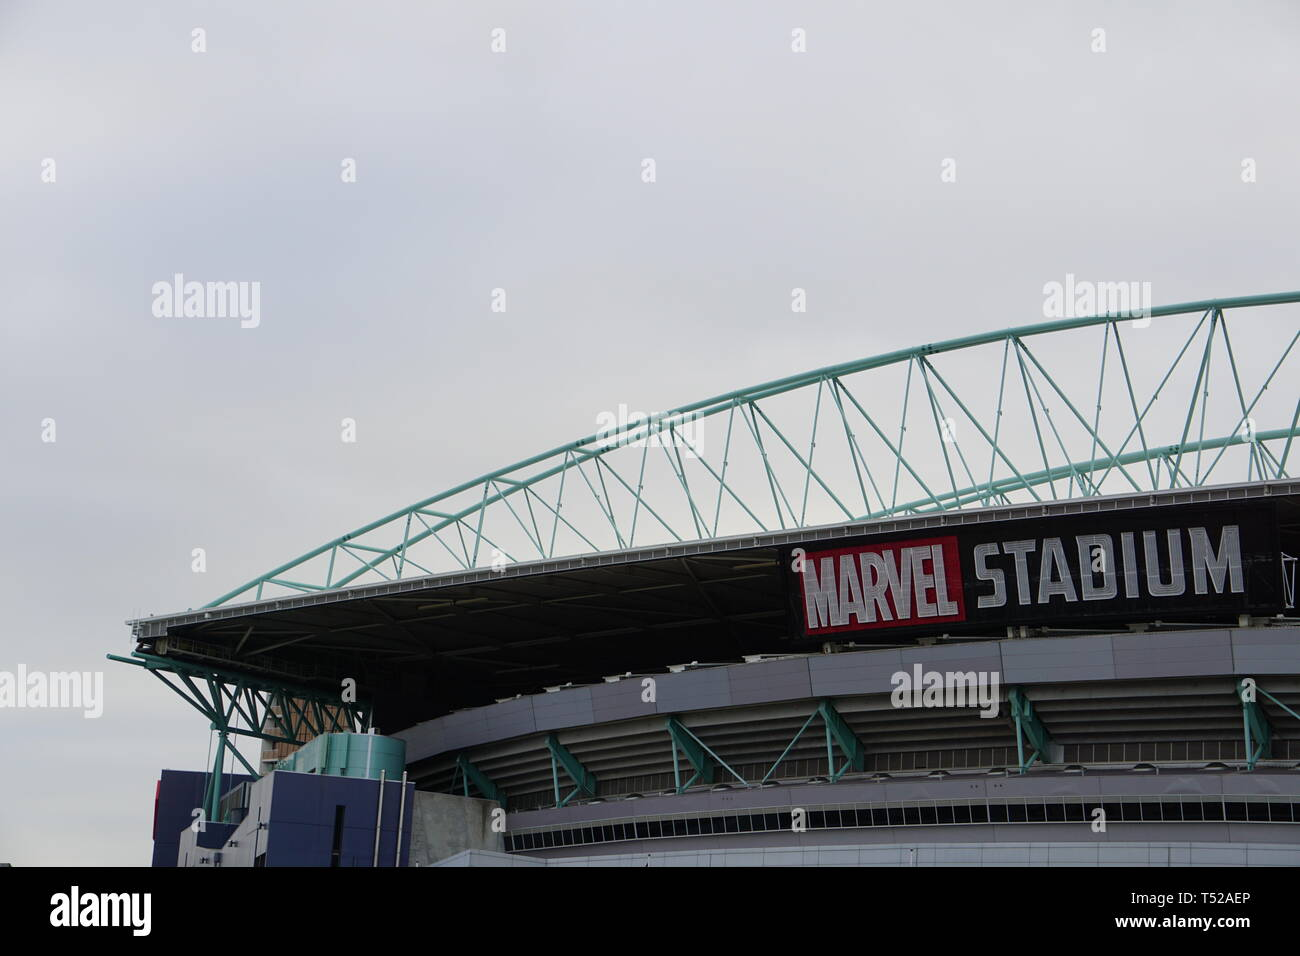 The newly renamed 'Marvel Stadium' in Docklands, Melbourne. - Stock Image